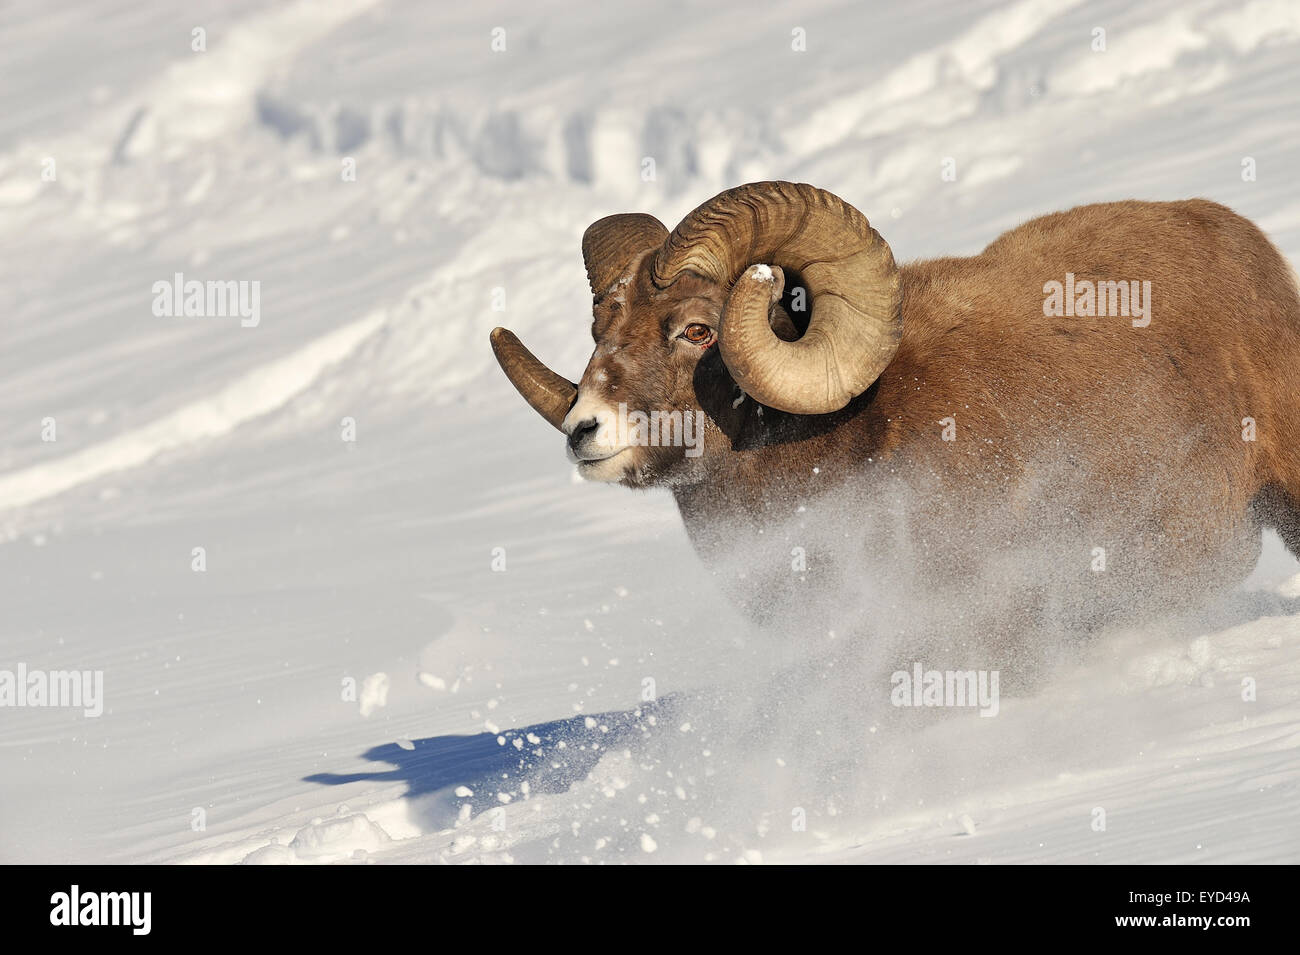 A close up front view image of a rocky mountain bighorn ram running down a snow covered hill side covered - Stock Image